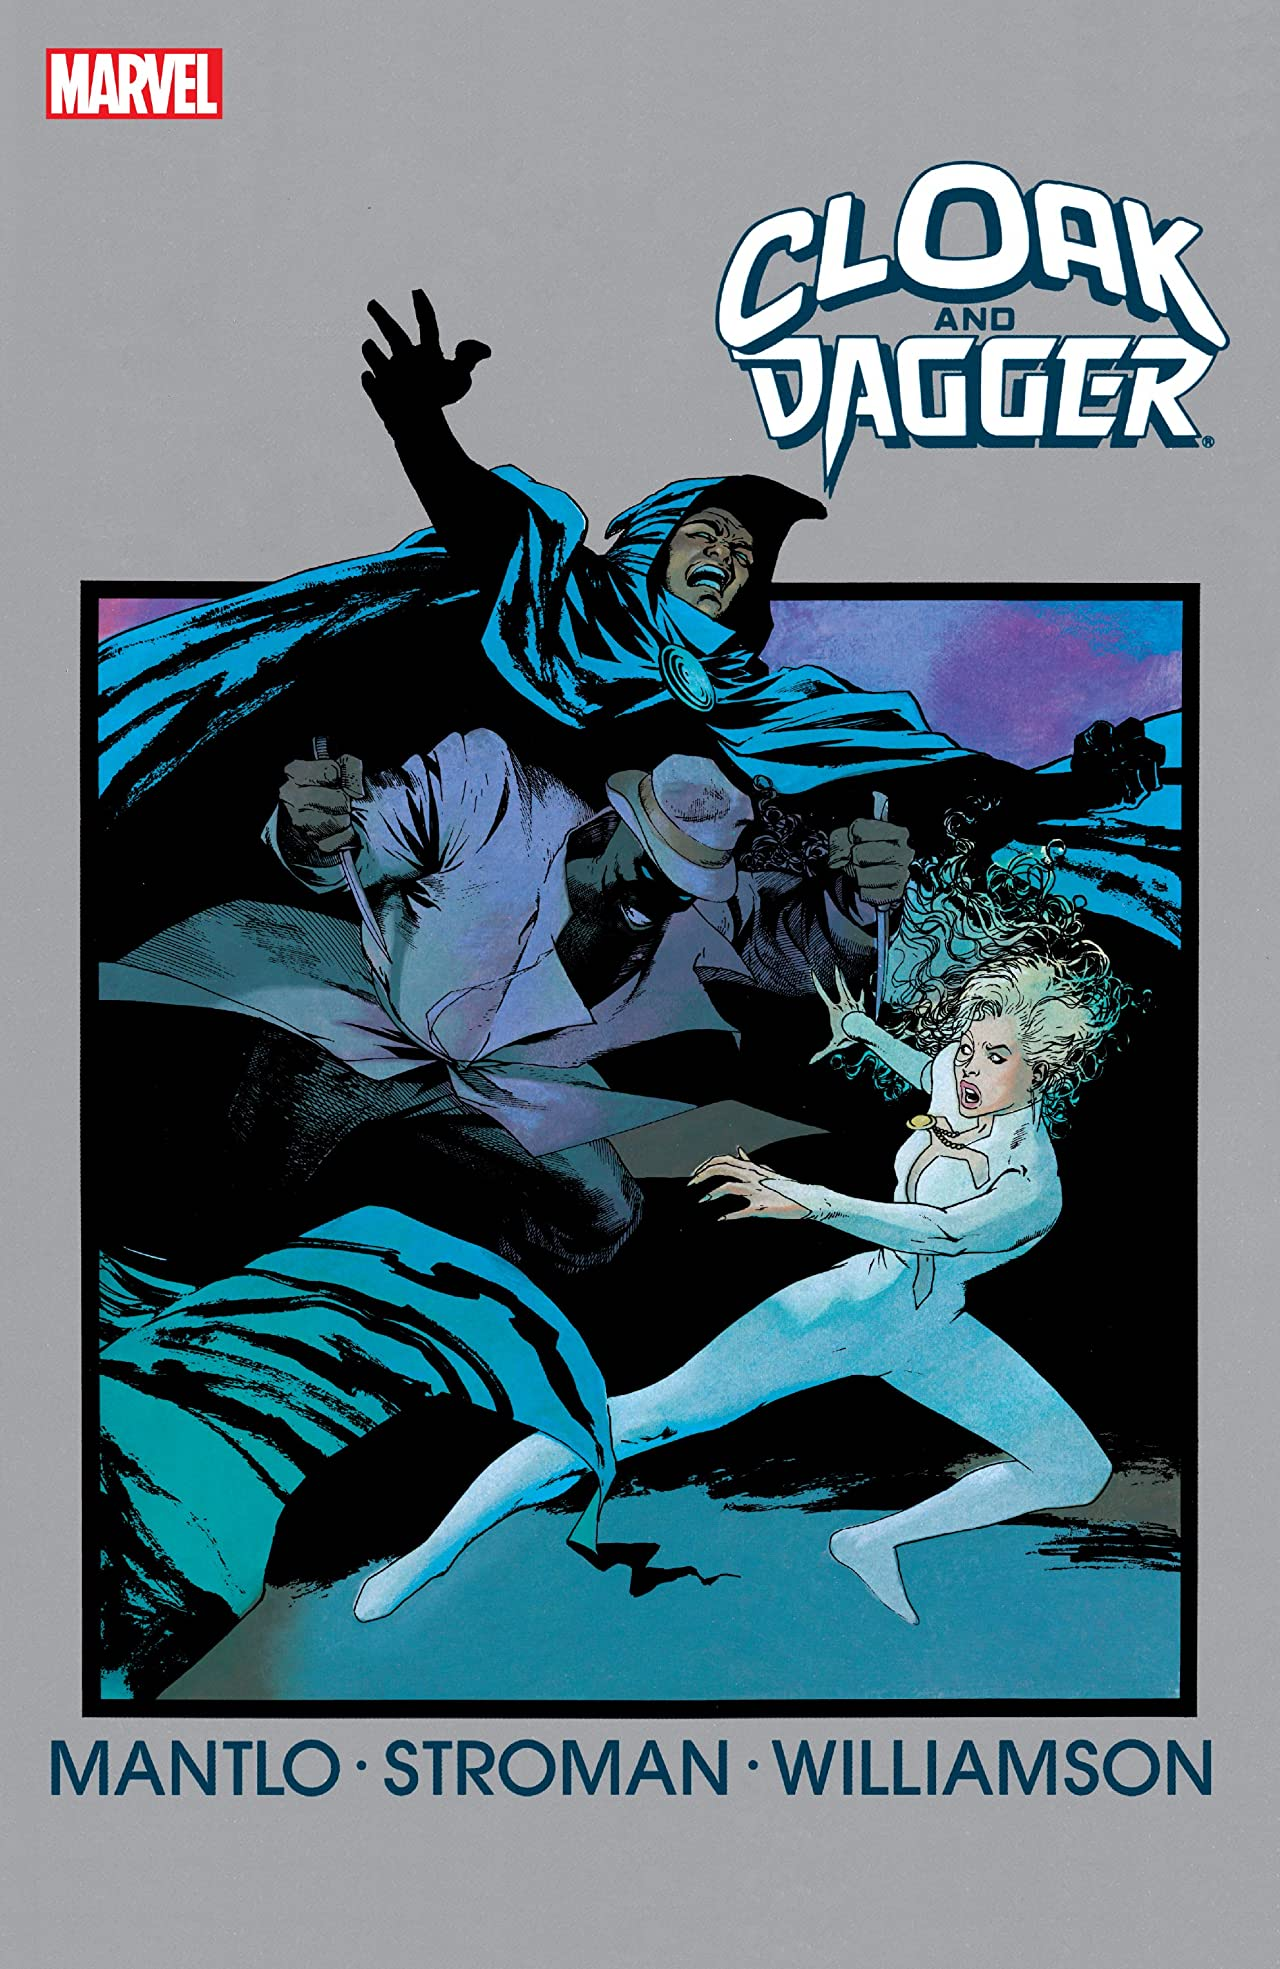 Marvel Graphic Novel #34: Cloak And Dagger - Predator And Prey